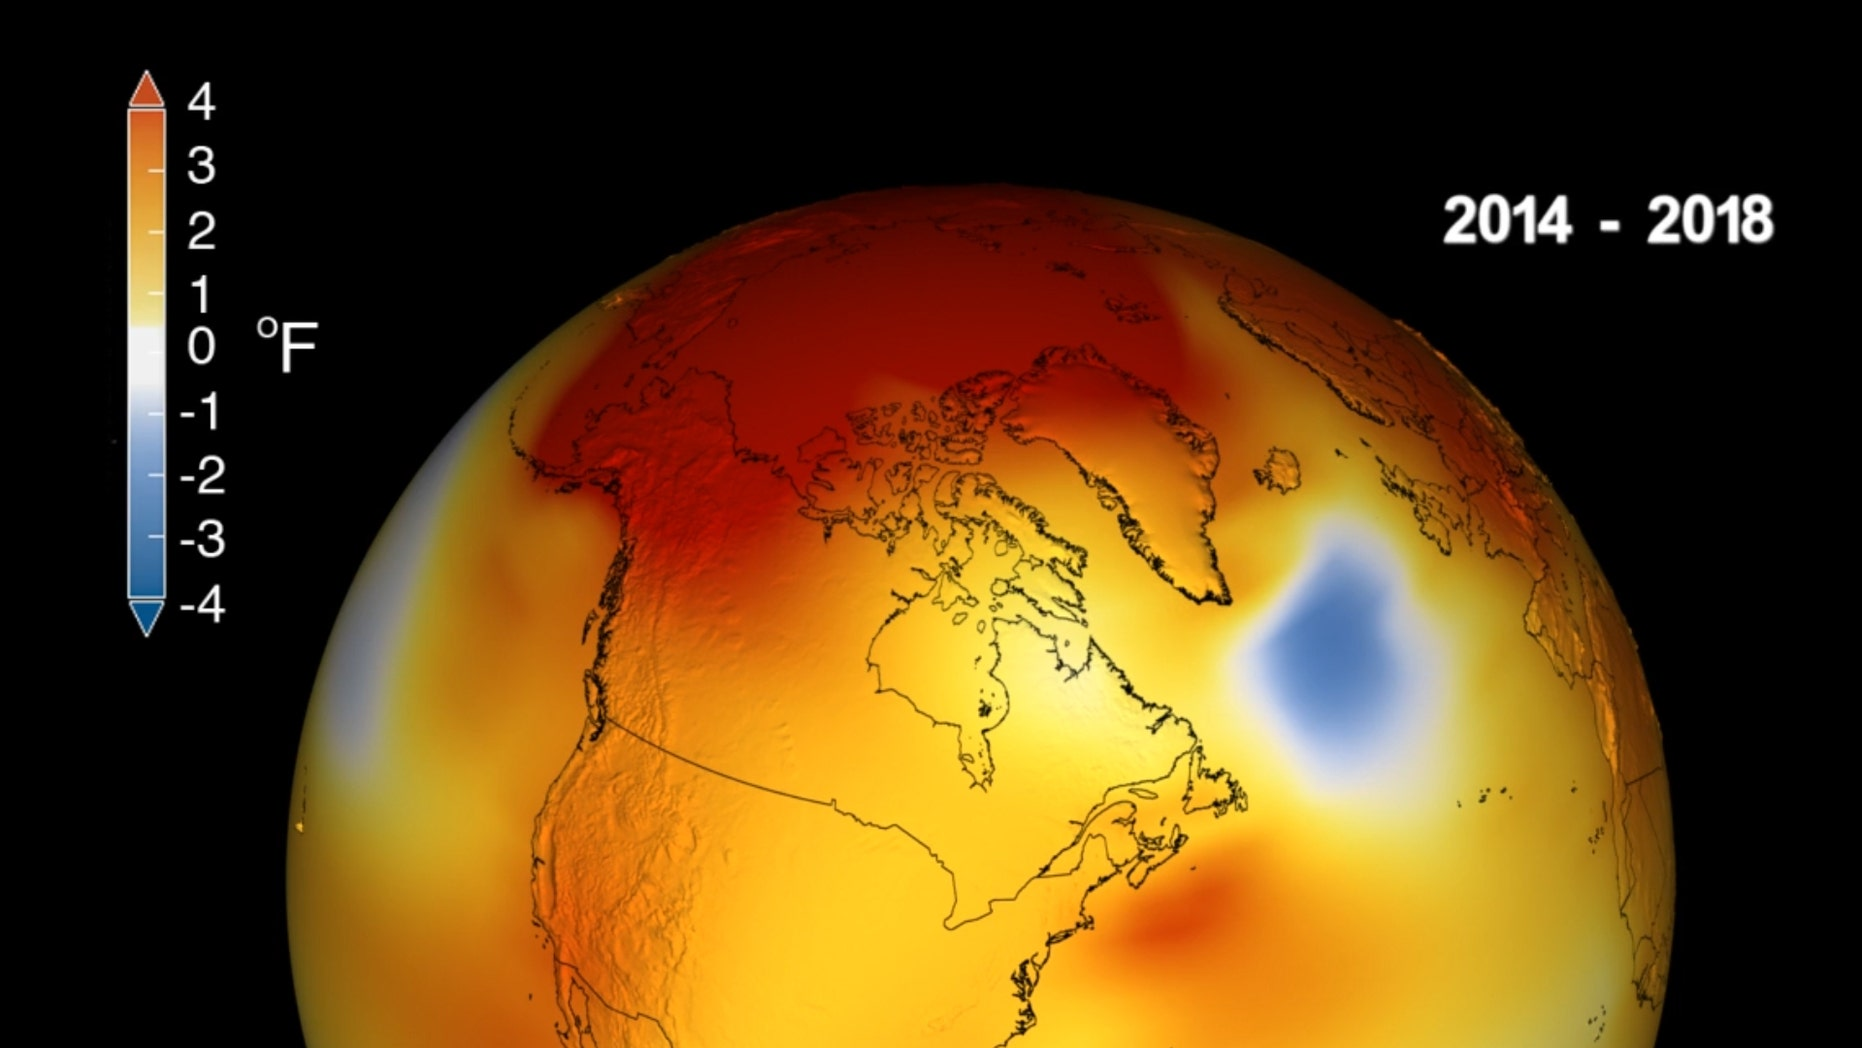 Earth could be headed for its warmest period on record